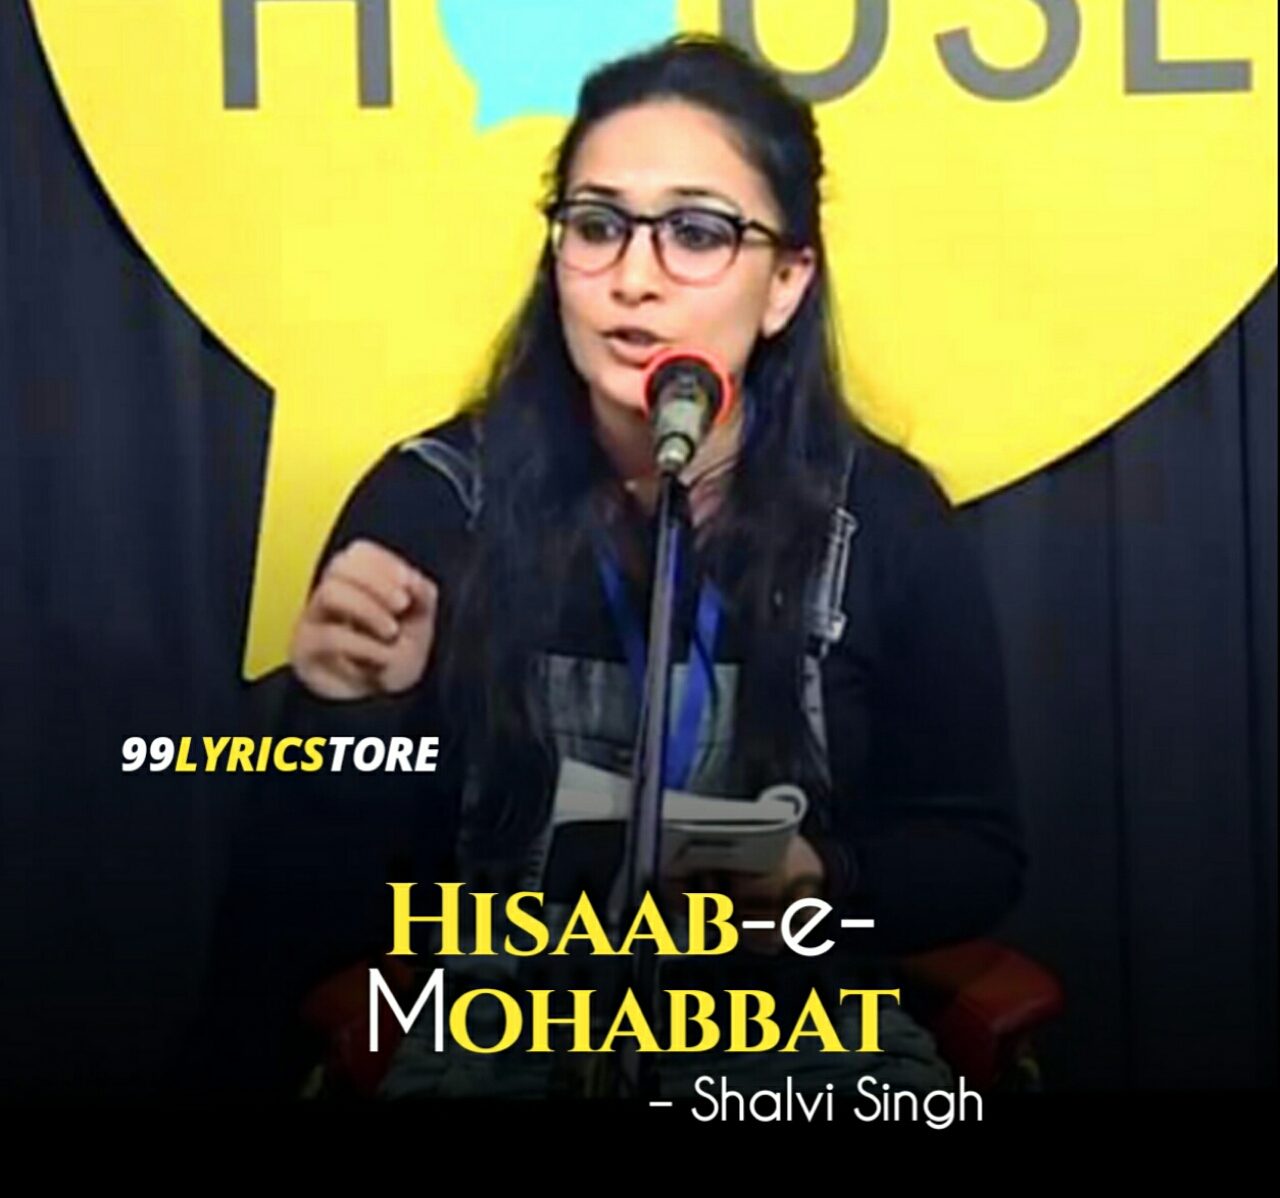 'Hisaab-e-Mohabbat' Poetry Lyrics has written and performed by Shalvi Singh herself on The Social House's Plateform.